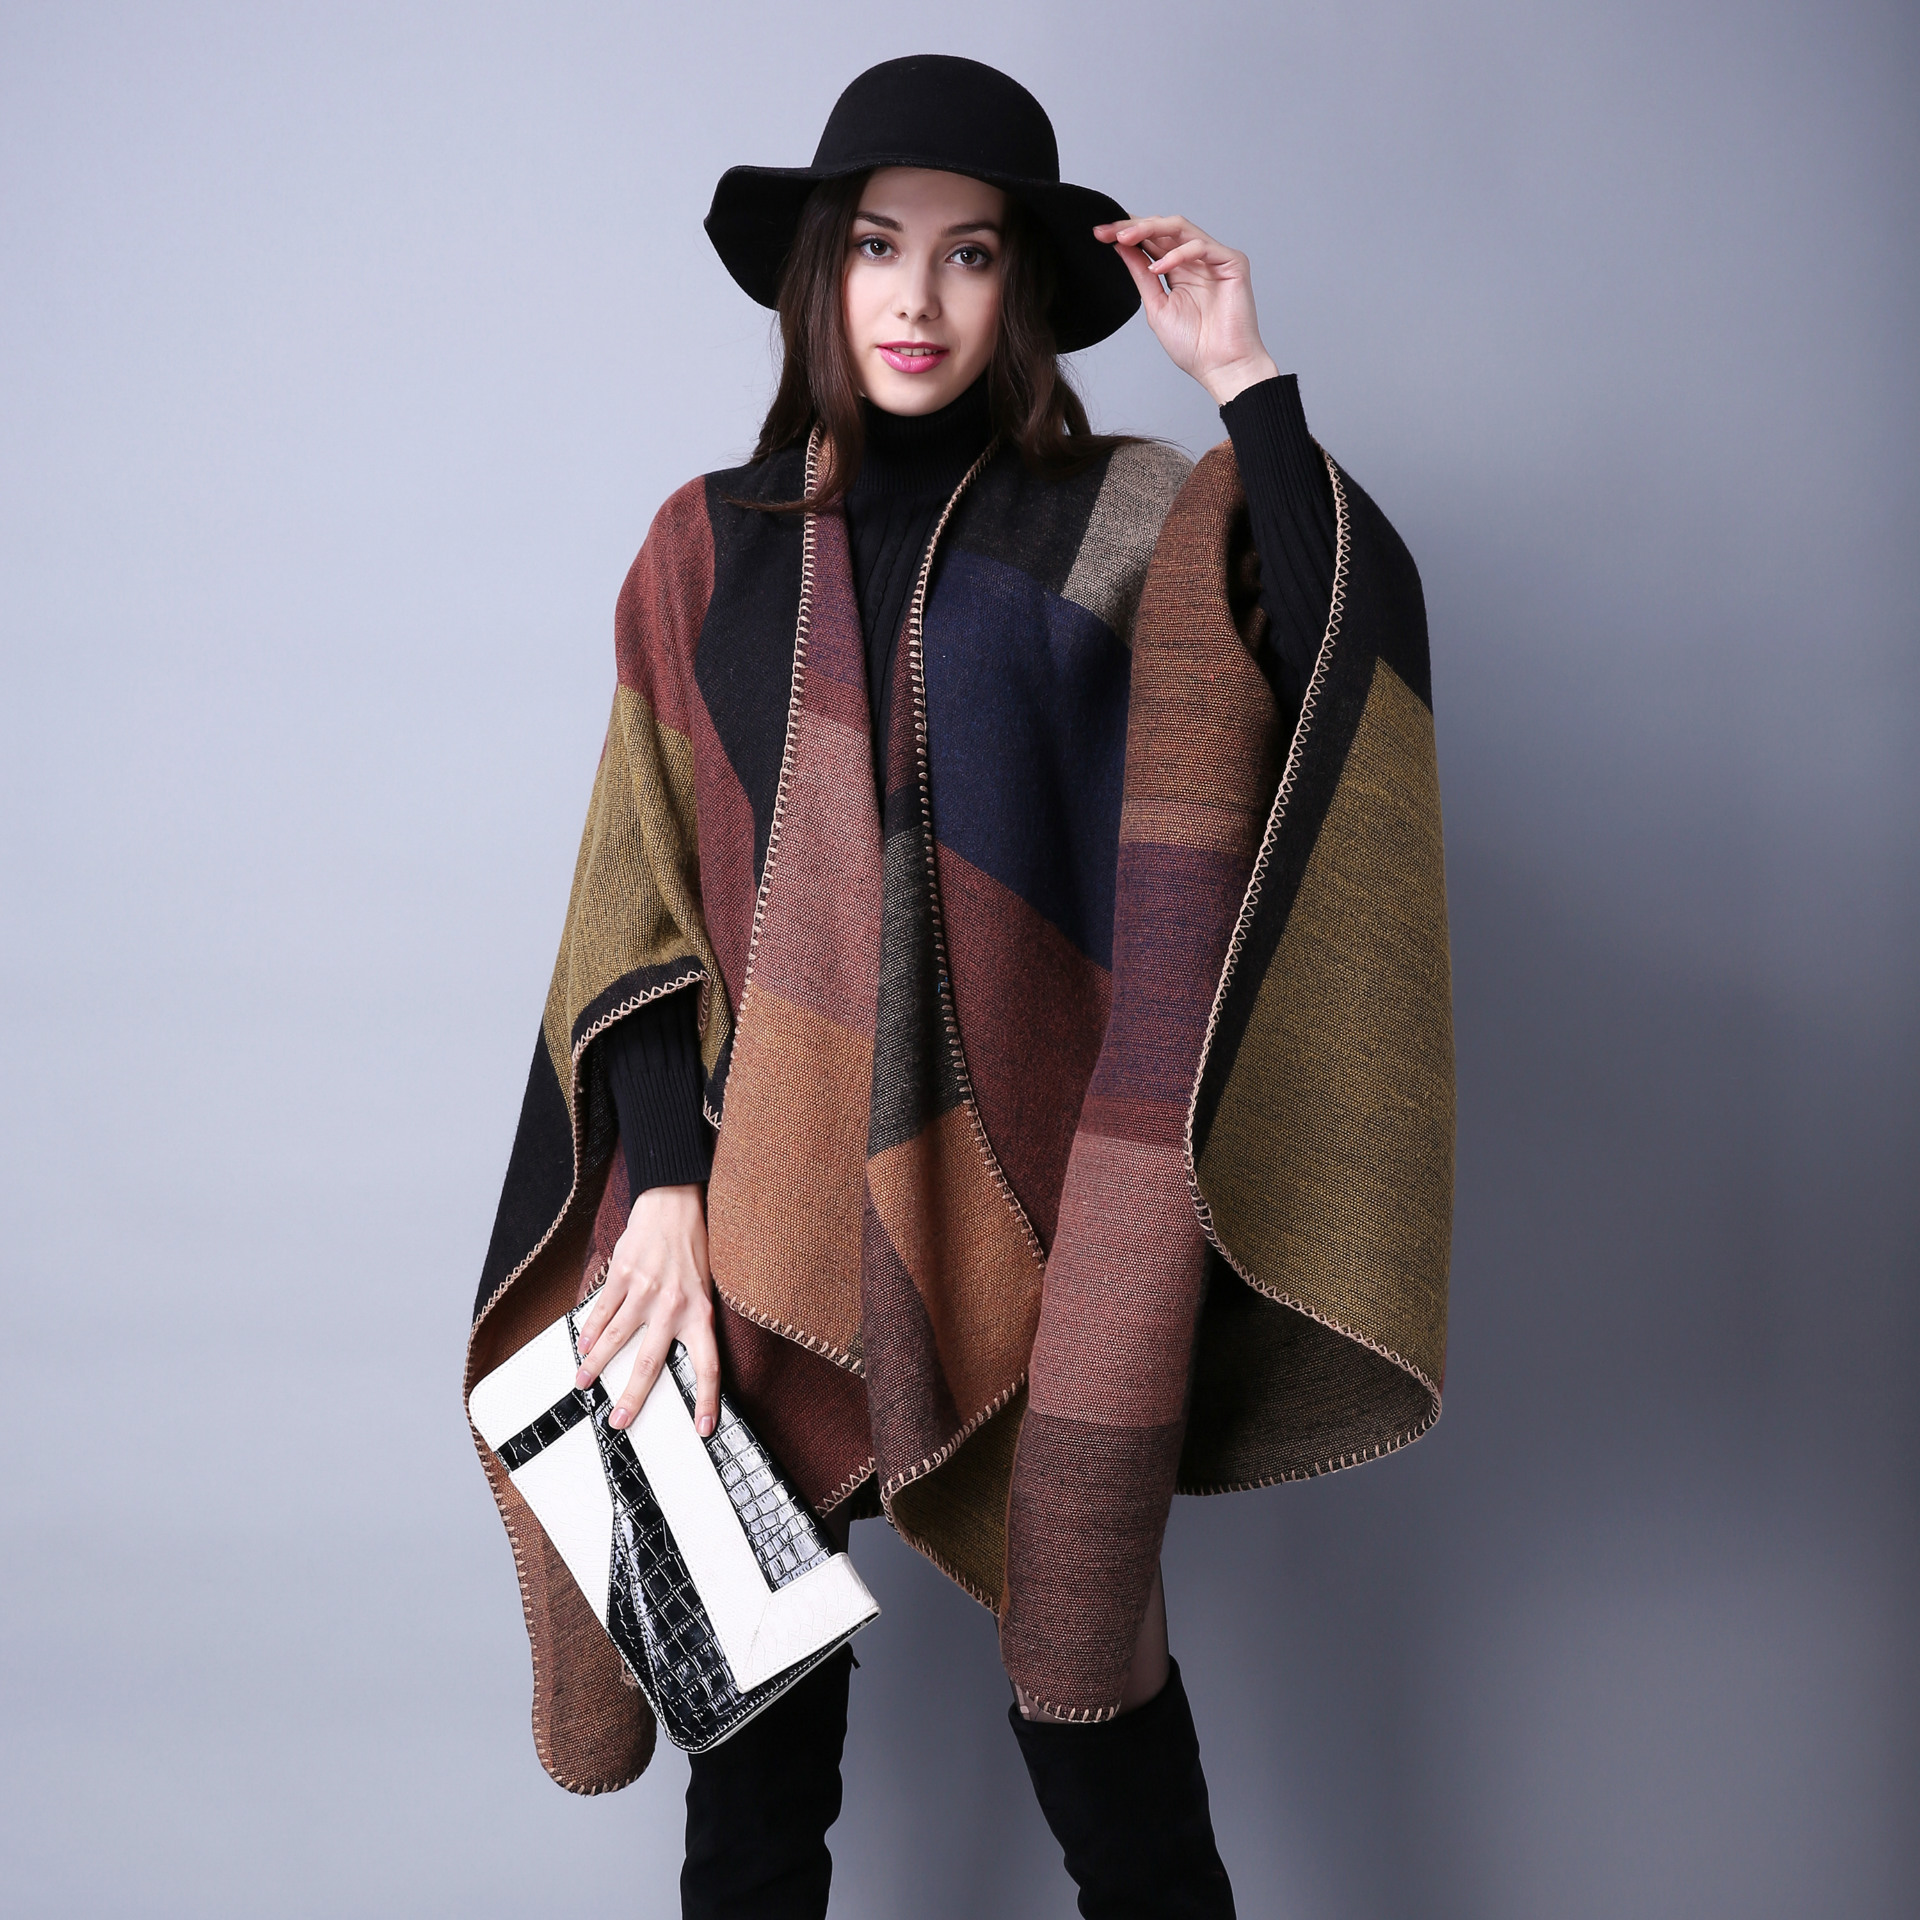 Women's Winter Reversible Oversized Blanket Plaid Sweater Poncho Cape Shawl And Wraps Cardigans Thicken Warm Pashmina Scarf